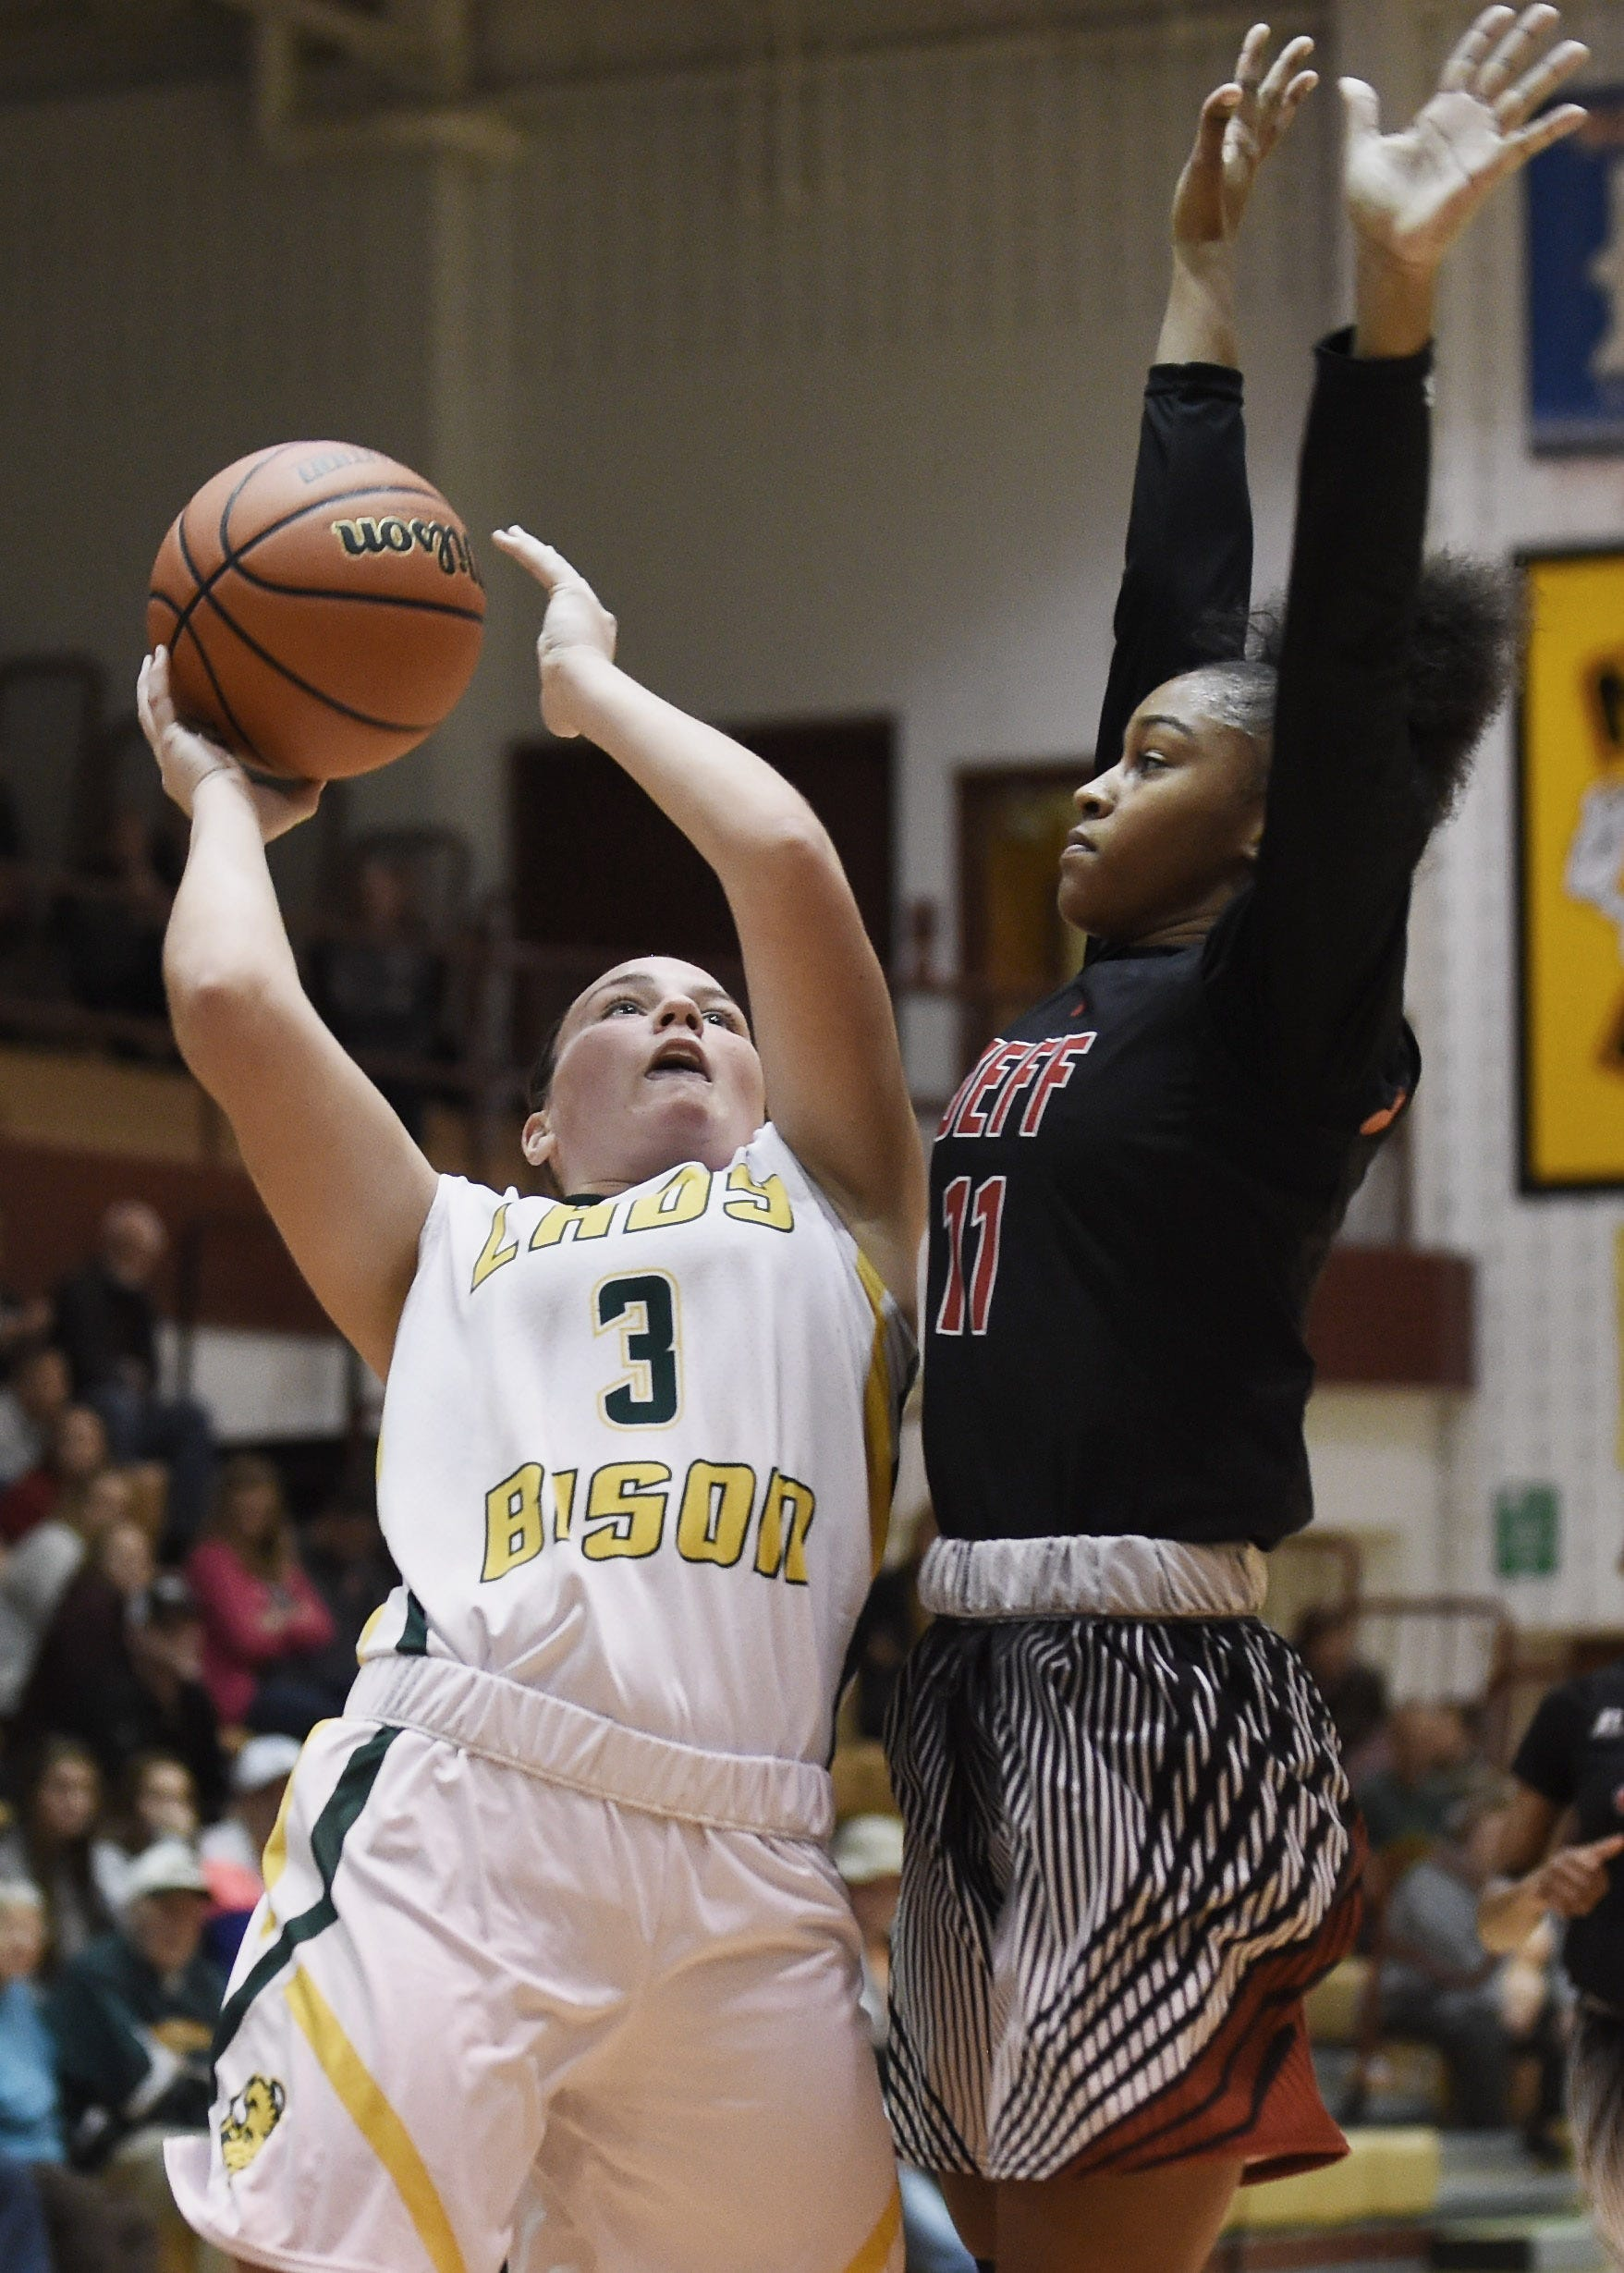 Cassidy Minniear has helped Benton Central to a 23-4 record and a second straight sectional title.